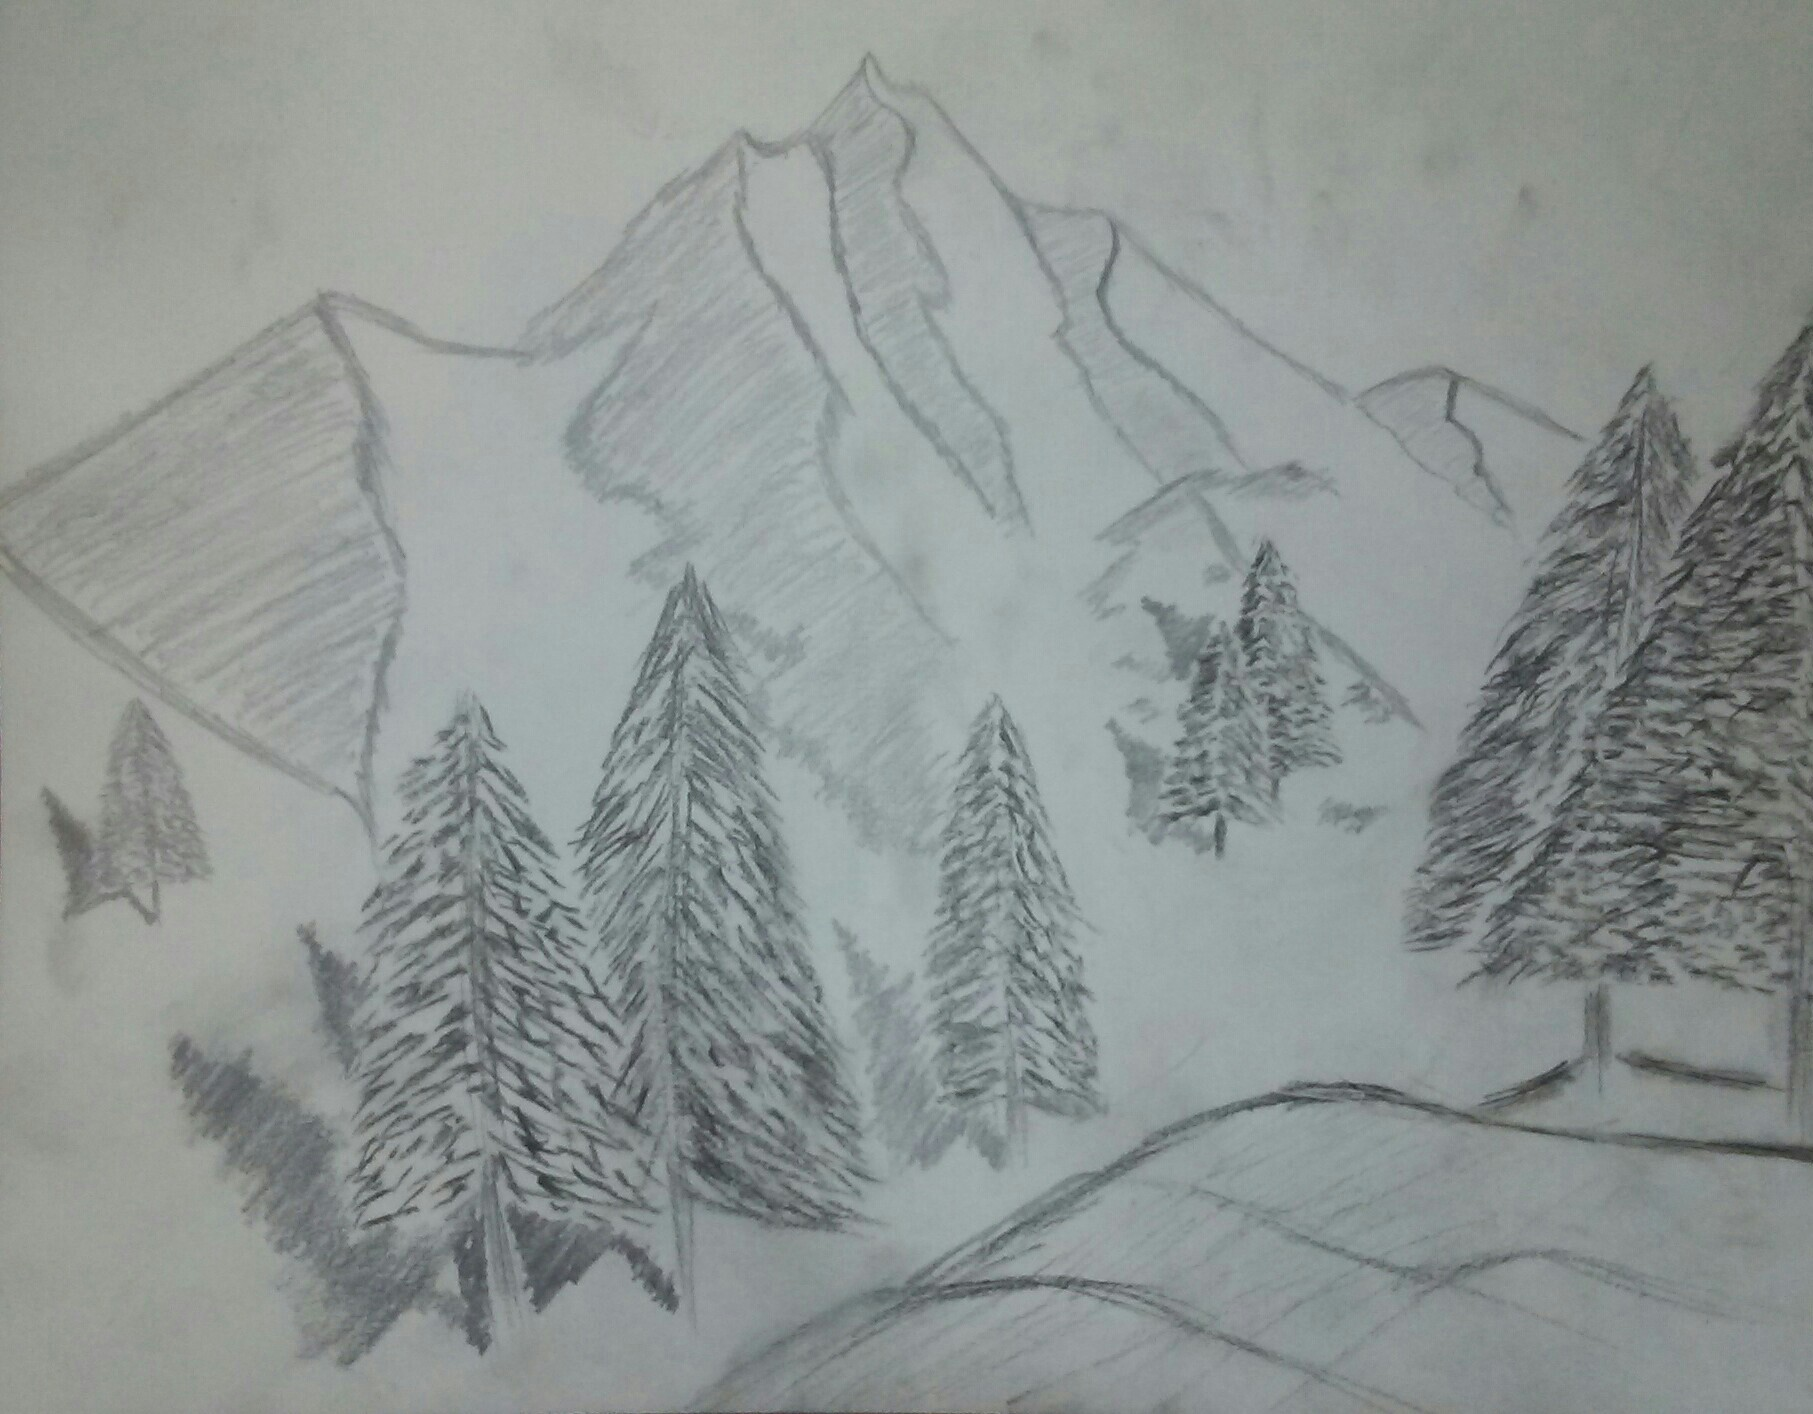 snow, sketch, mountain, hills, pine trees, shadows, black and white, pencil sketch,